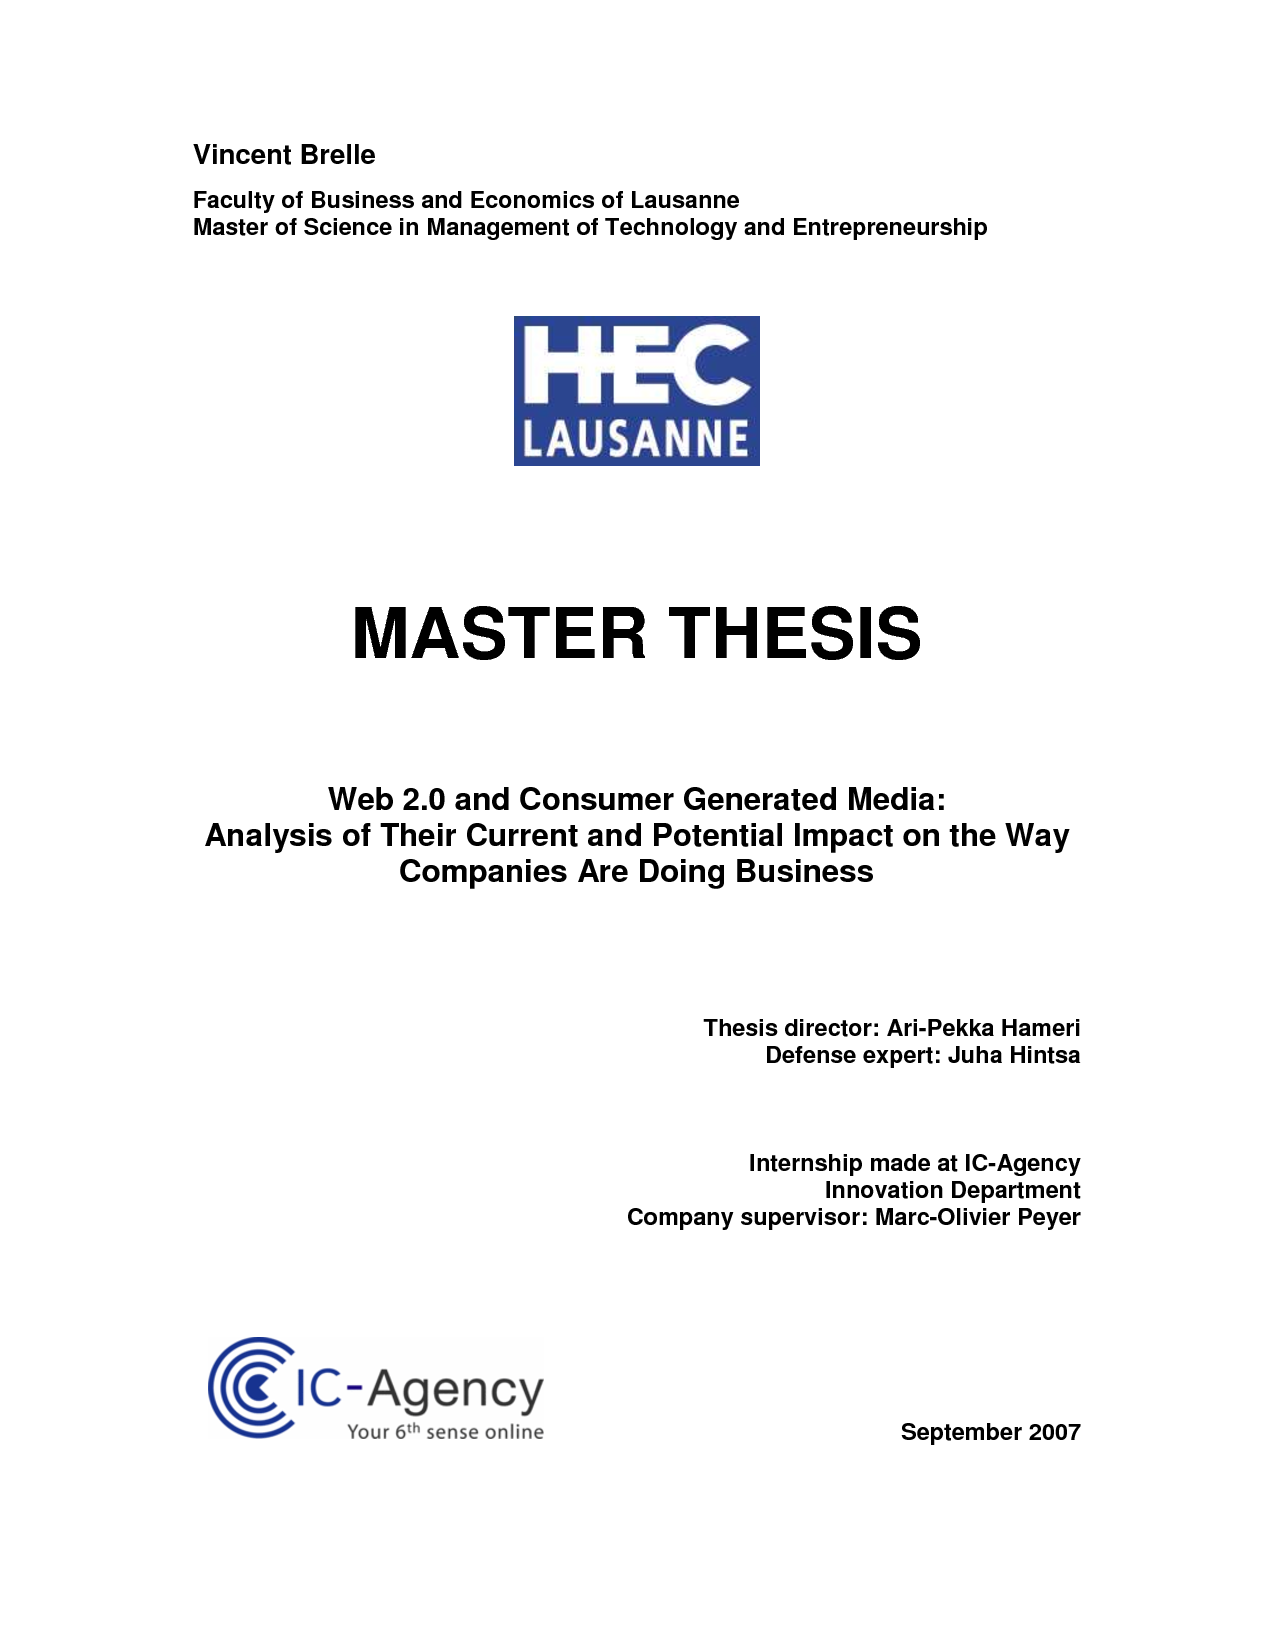 University of helsinki master thesis example